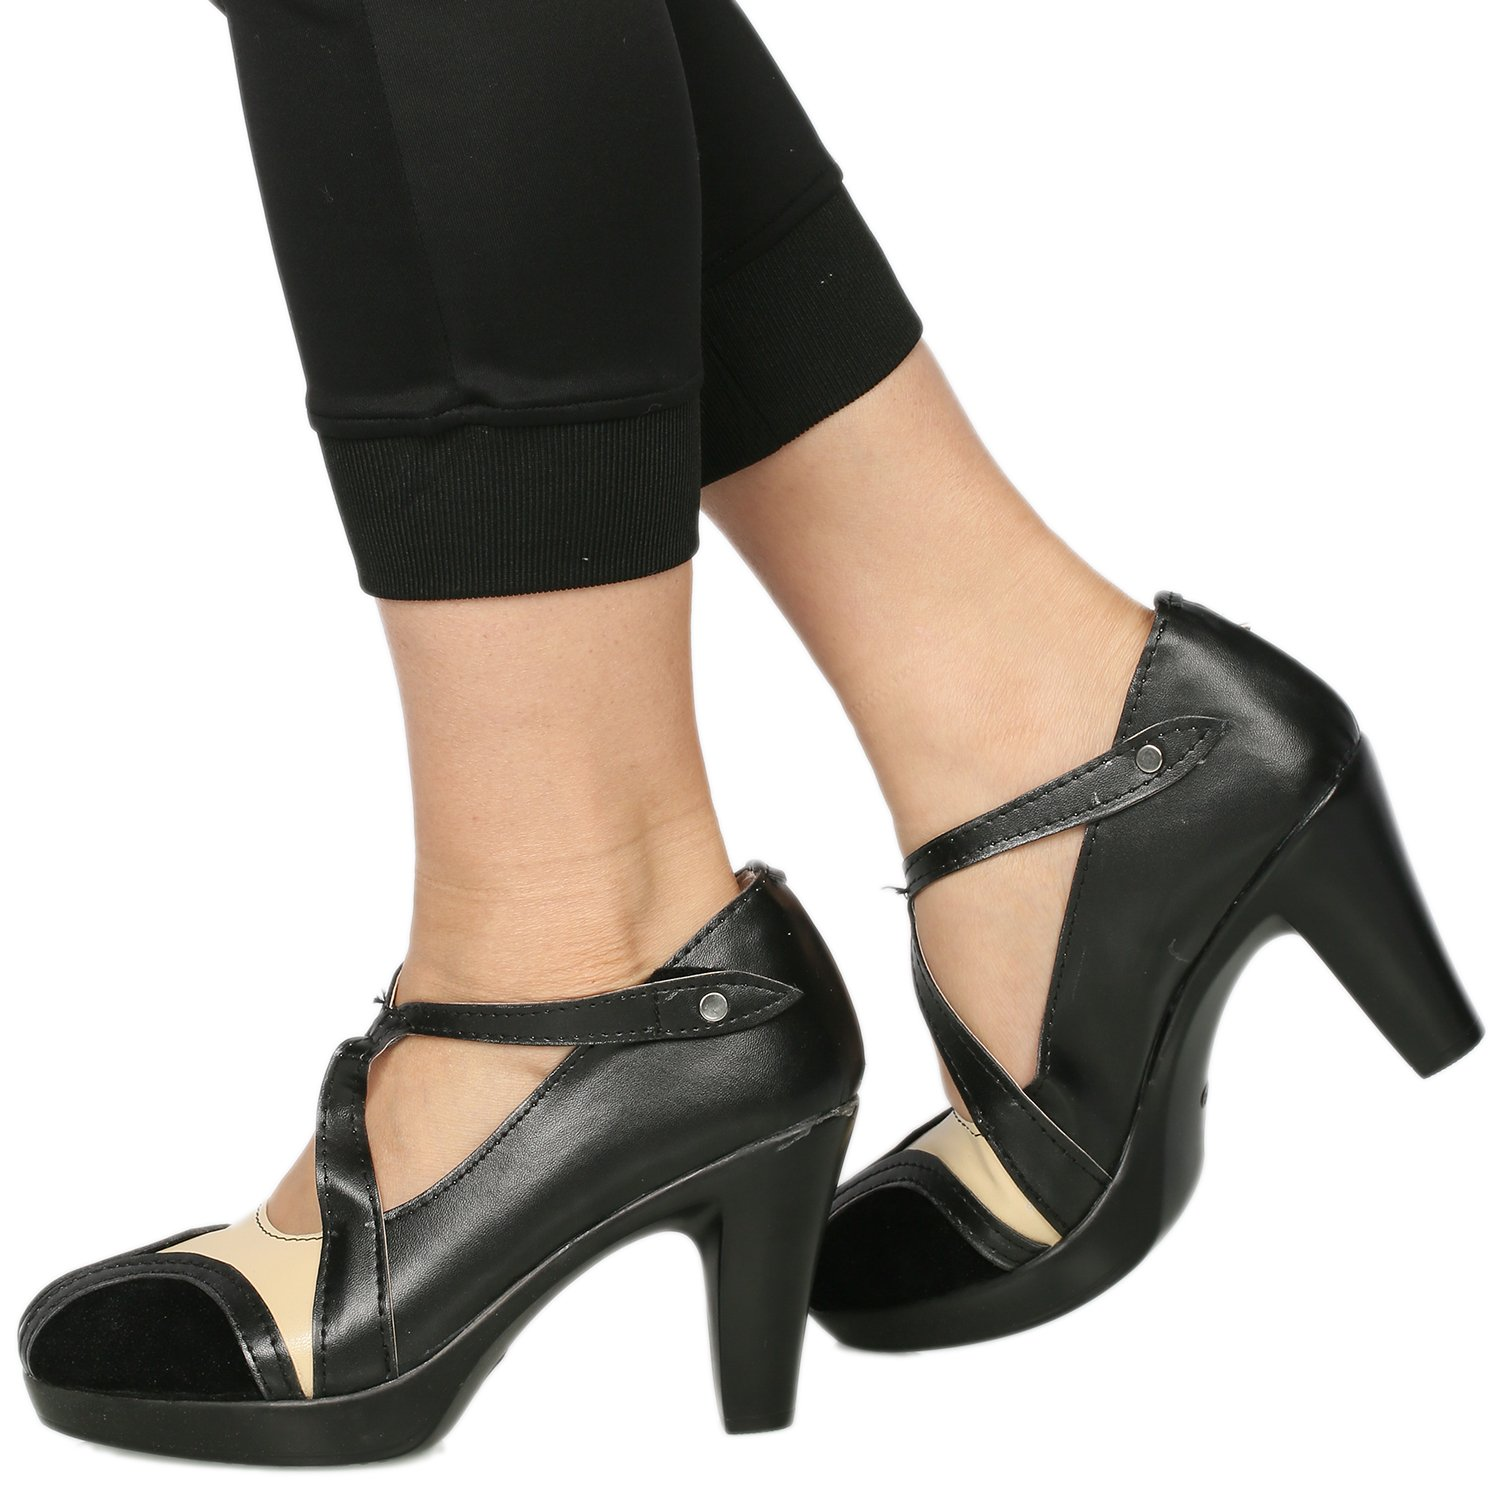 1920s Style Shoes Cosplayrim Queenie Cosplay Goldstein Shoes Black PU Fantastic High-heeled Beasts Shoes for Women $75.90 AT vintagedancer.com